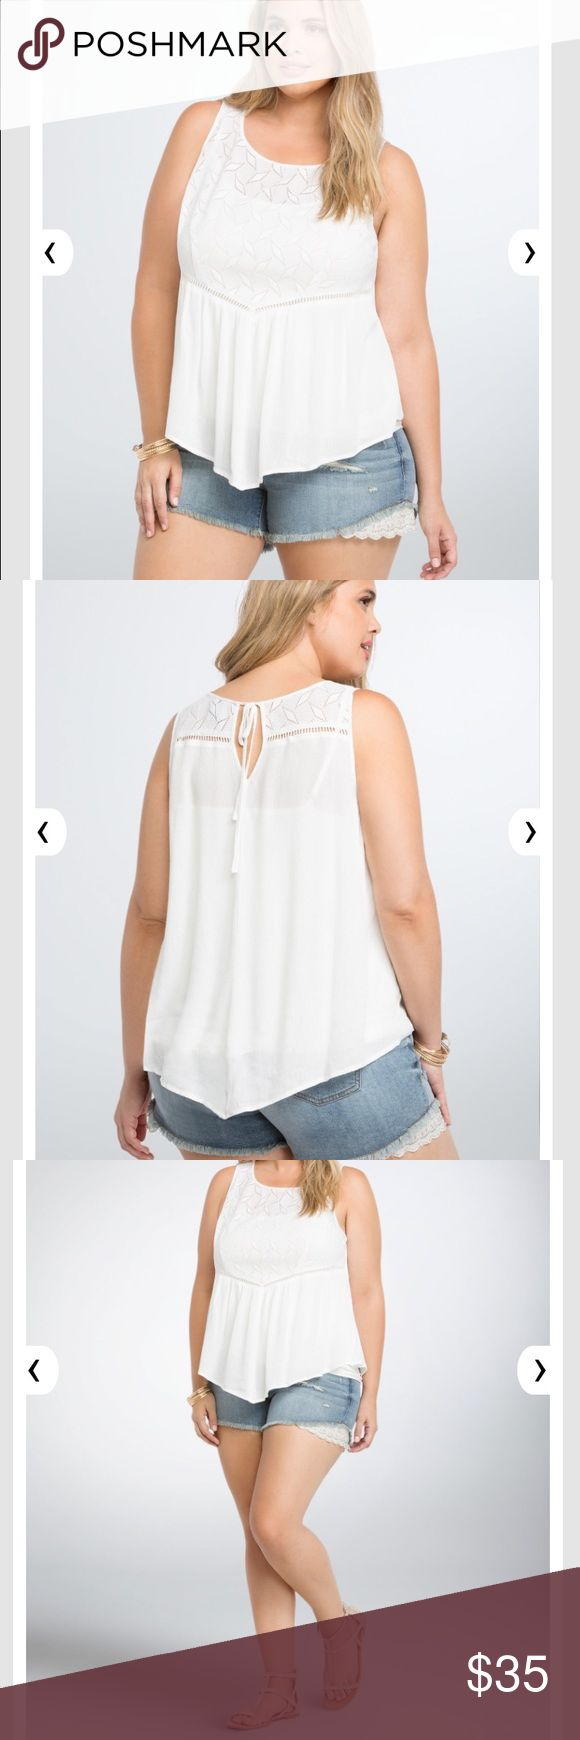 Plus Size Torrid Crochet Peplum Lace Tank Top ✨ Brand New with Tags! - Sold Out Online!  ✨ Length:  ✨ Bust:  ✨ Fabric: 90% Nylon 10% Spandex ❌ No Trades ❌ No Holds  Offers Welcomed  Bundle Discount torrid Tops Tank Tops